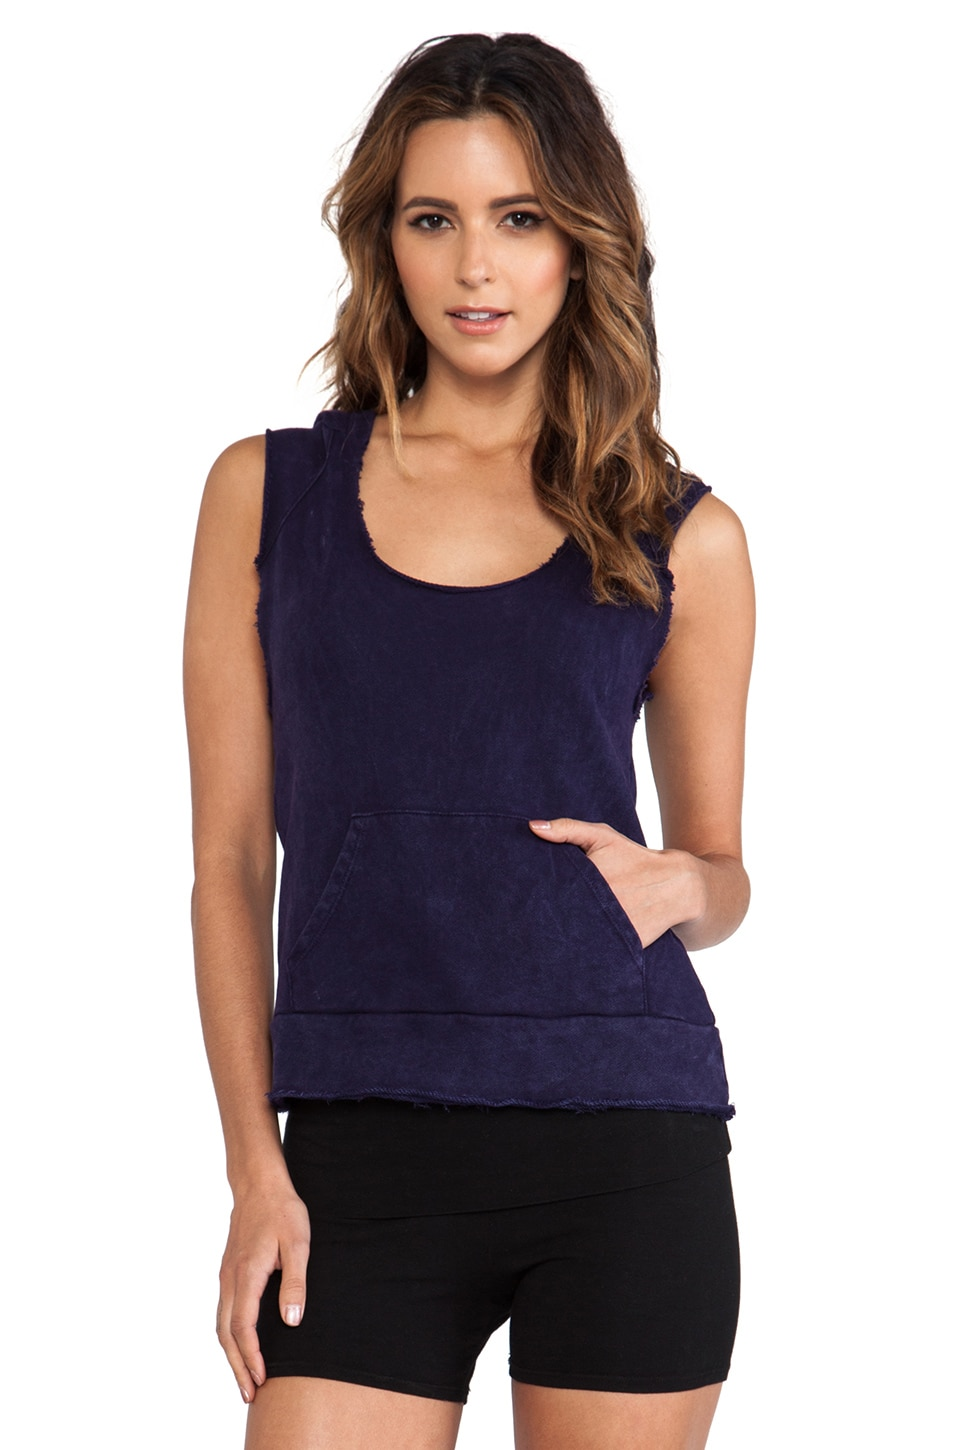 SOLOW Raw Edge Sleeveless Hoodie in Navy